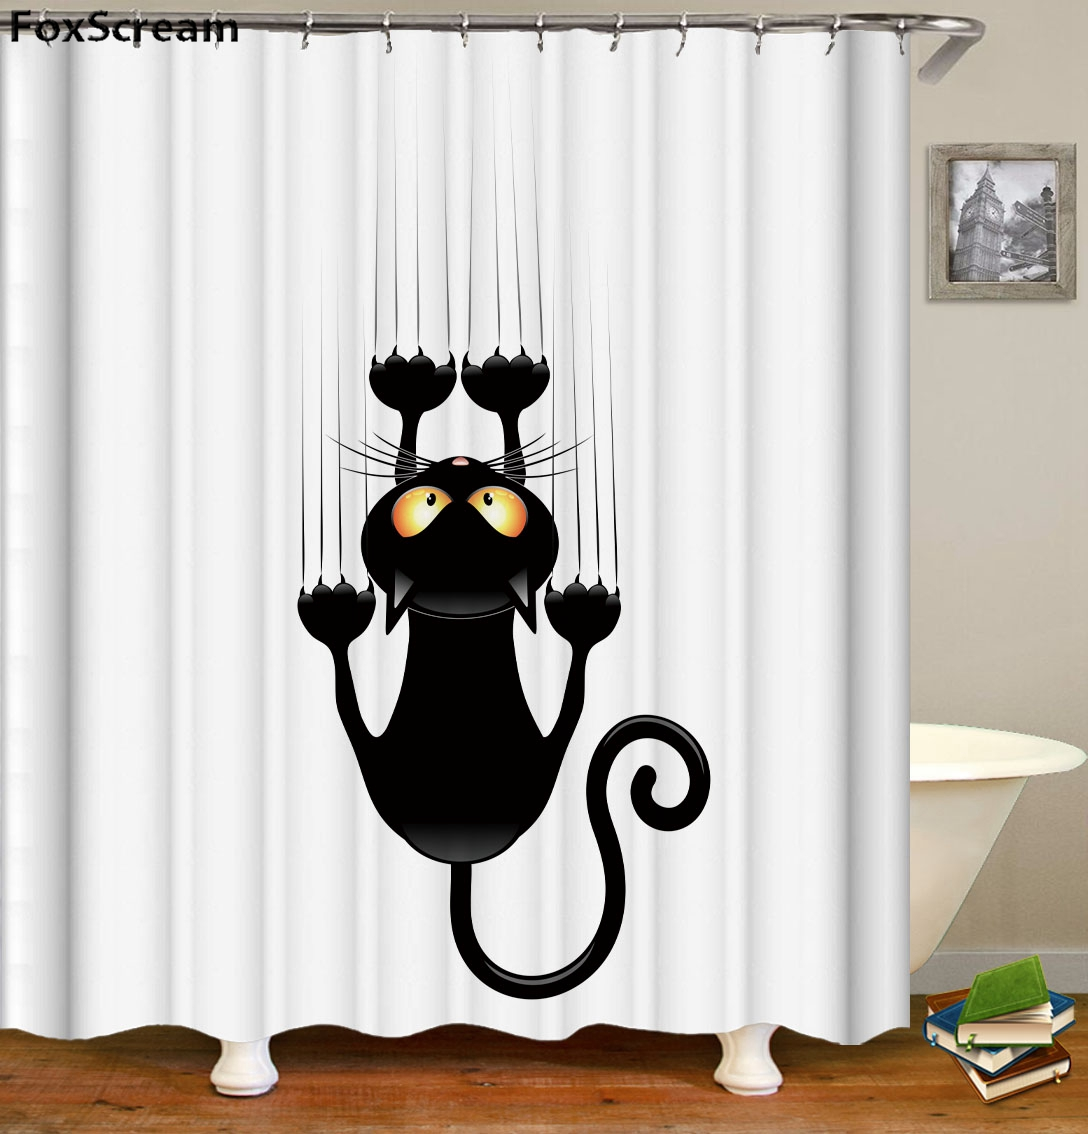 Cat Bath Shower Curtain Funny Star Outside Space Nebula Galaxy Cat Painting Fabric Bathroom Curtains For Bathroom